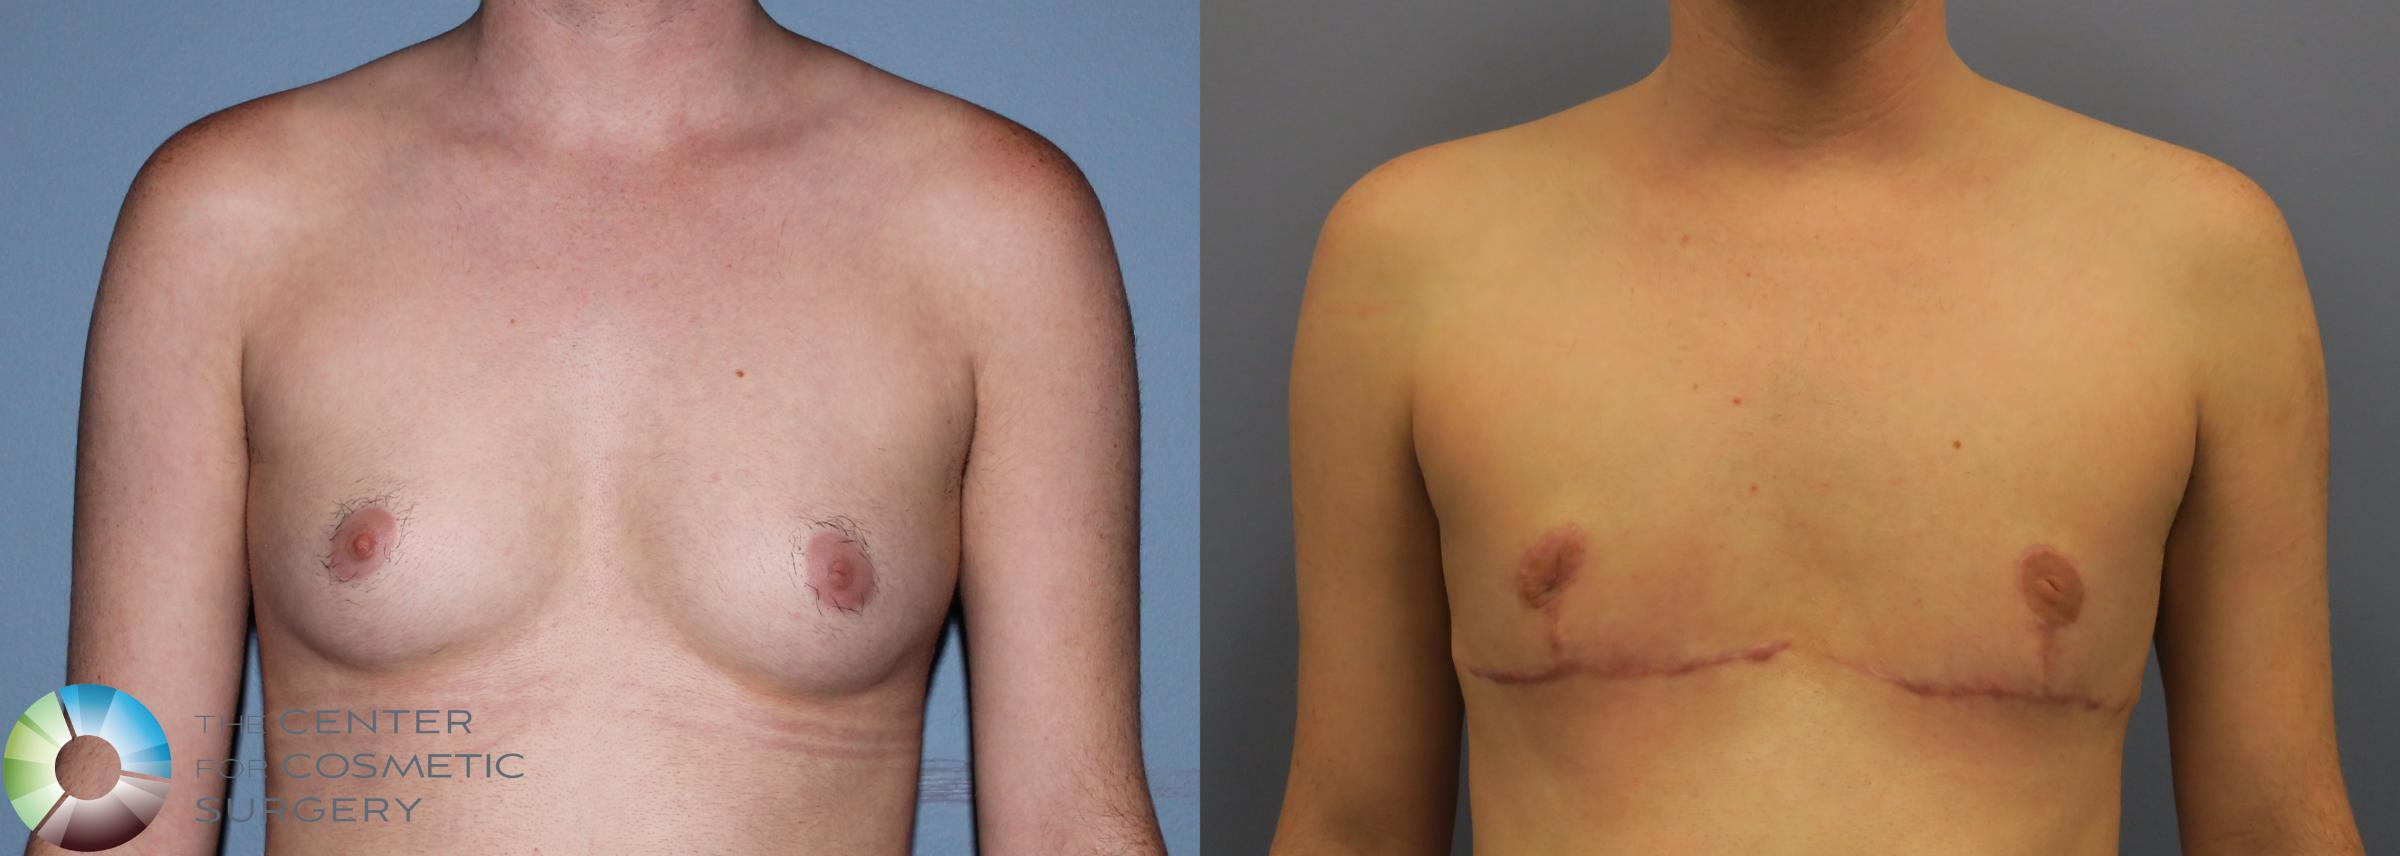 FTM Top Surgery/Chest Masculinization Case 11205 Before & After Front | Golden, CO | The Center for Cosmetic Surgery